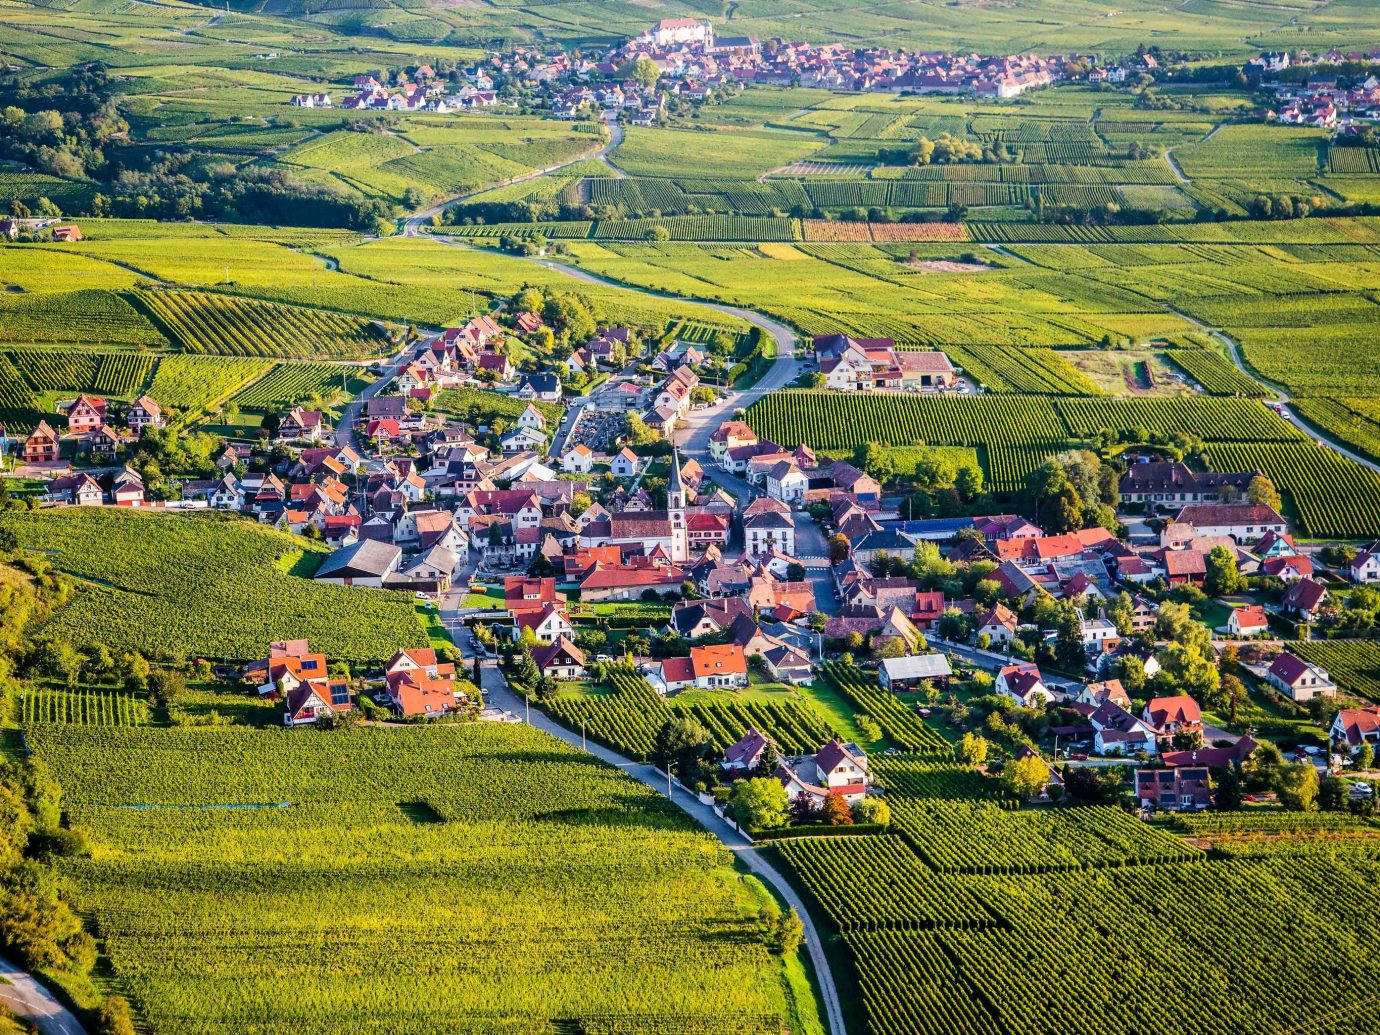 europe Outdoors + Adventure Trip Ideas aerial photography bird's eye view field grassland highland Village suburb rural area mountain village photography residential area agriculture hill meadow sky grass Farm landscape tree hill station land lot City mount scenery pasture plain plant mountain panorama